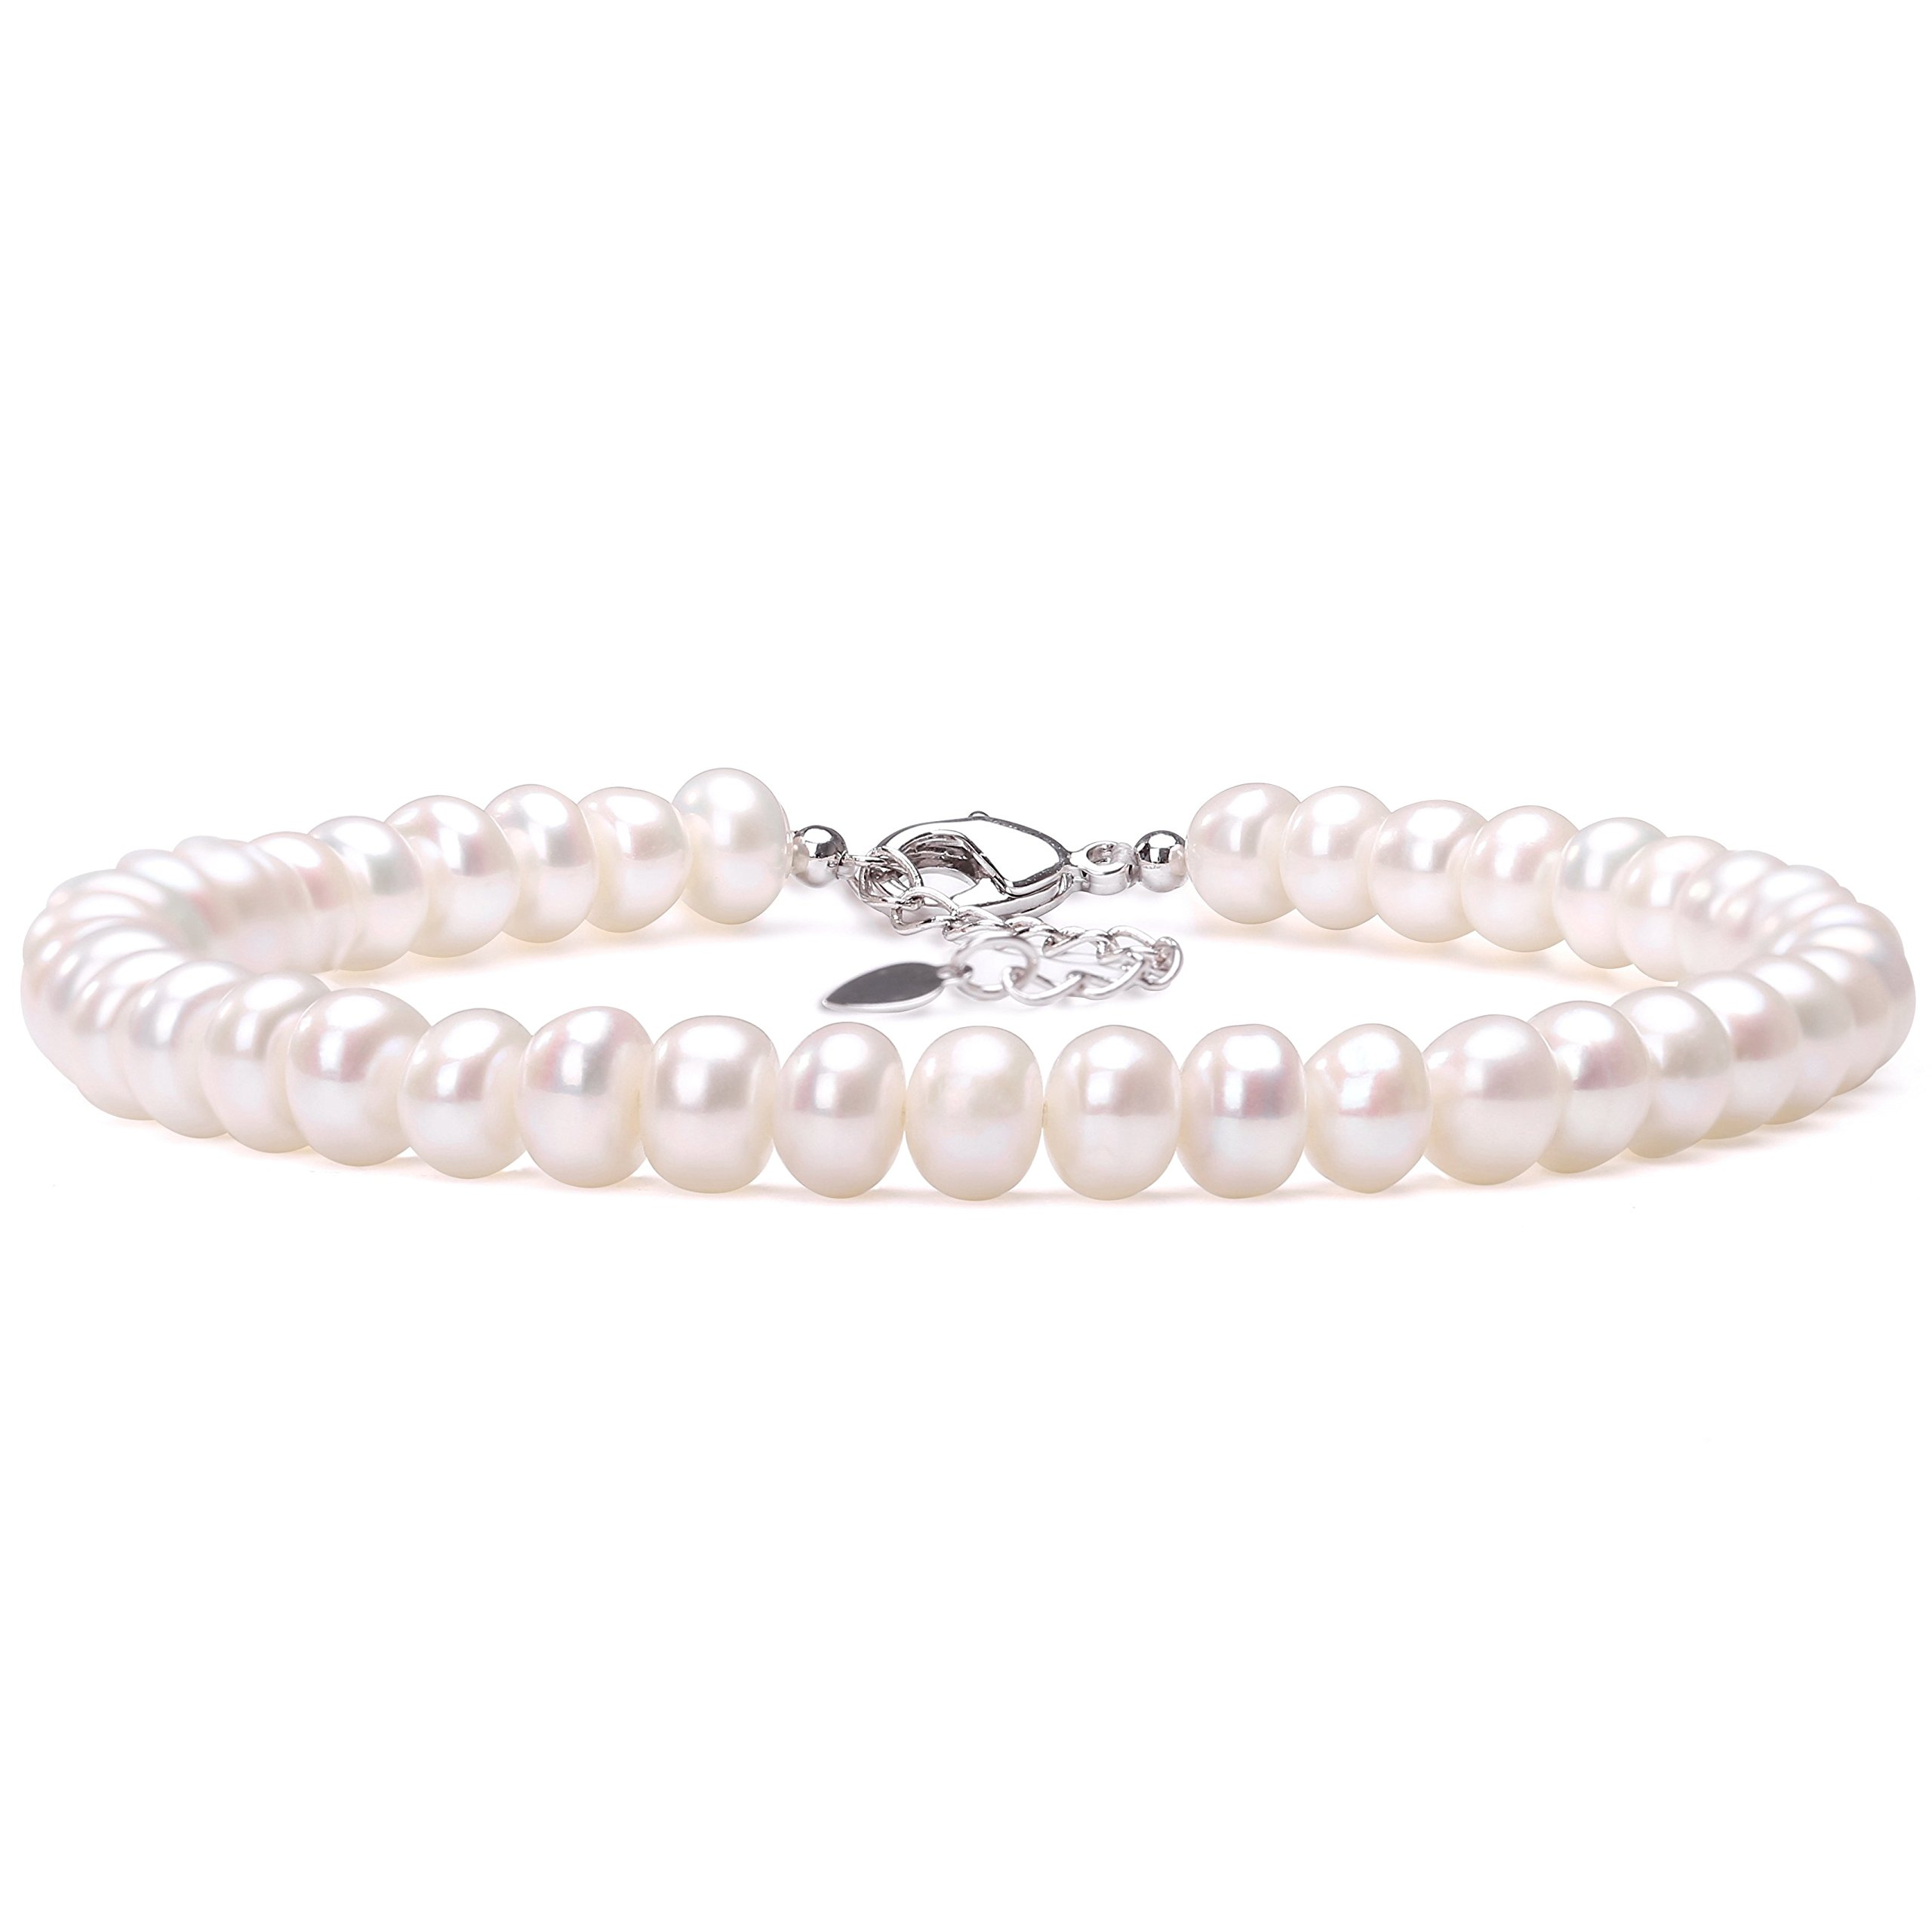 Aobei Cultured Freshwater Pearls Anklet 9 to 10 Inch White Pearl Beaded Jewelry with Lobster Clasp for Women